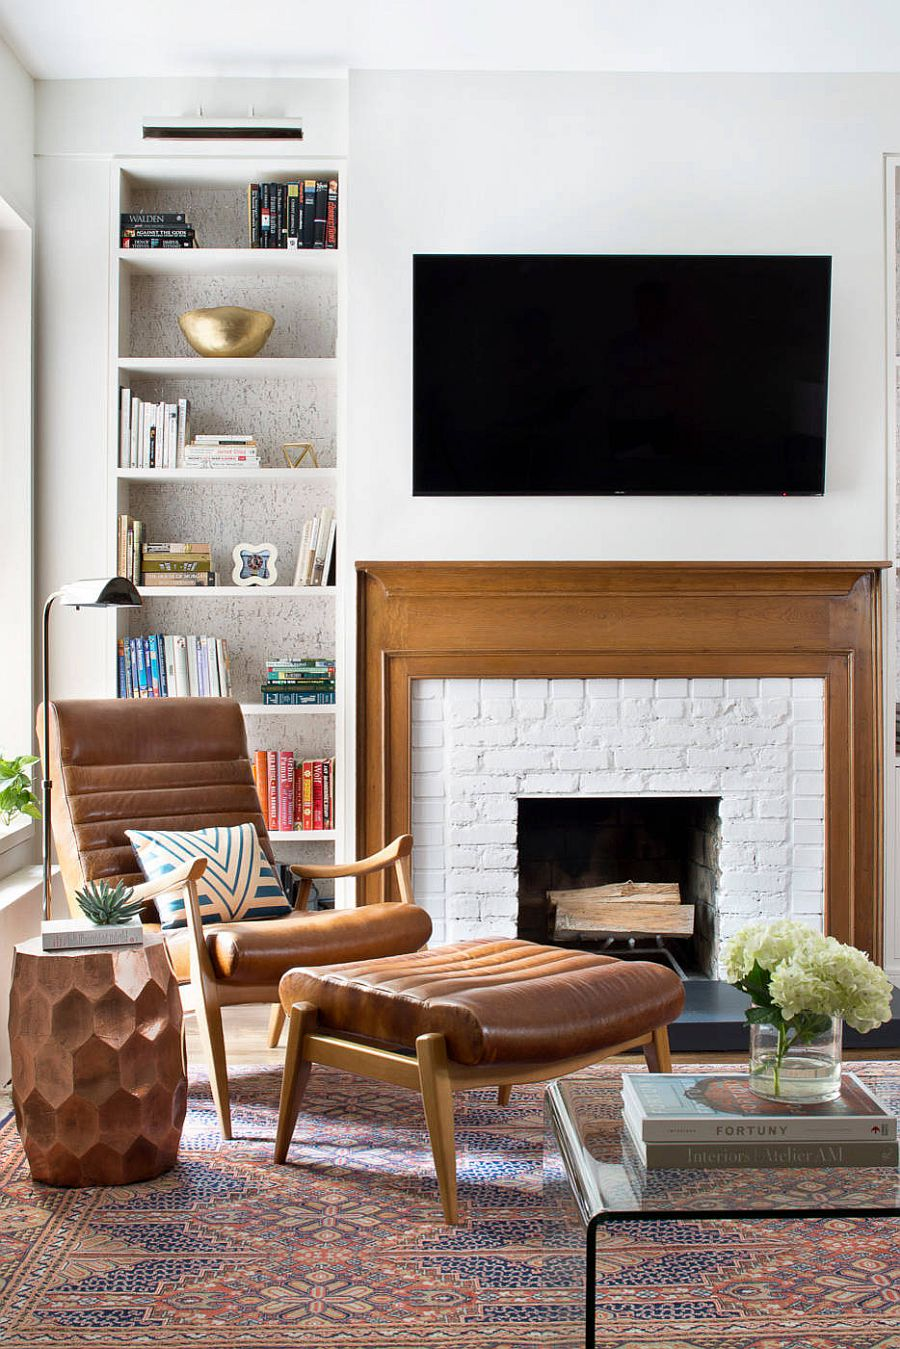 Wood brings warmth and so does the decor in this white boho chic living room